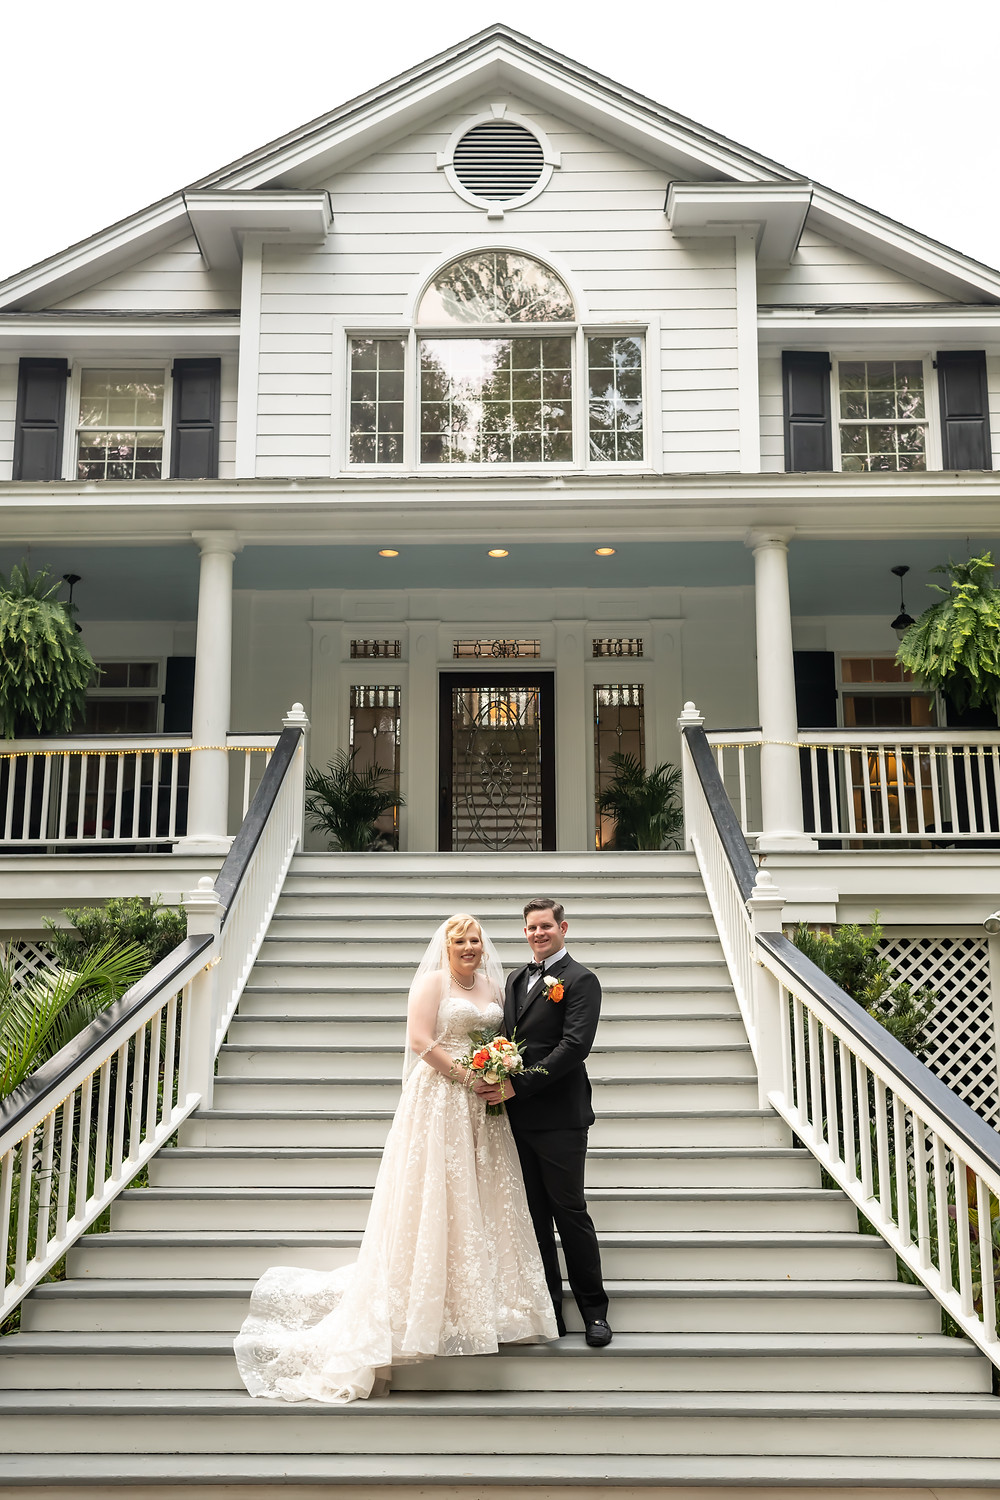 Hannah and Isaac's Mackey House Wedding in Savannah, Georgia.